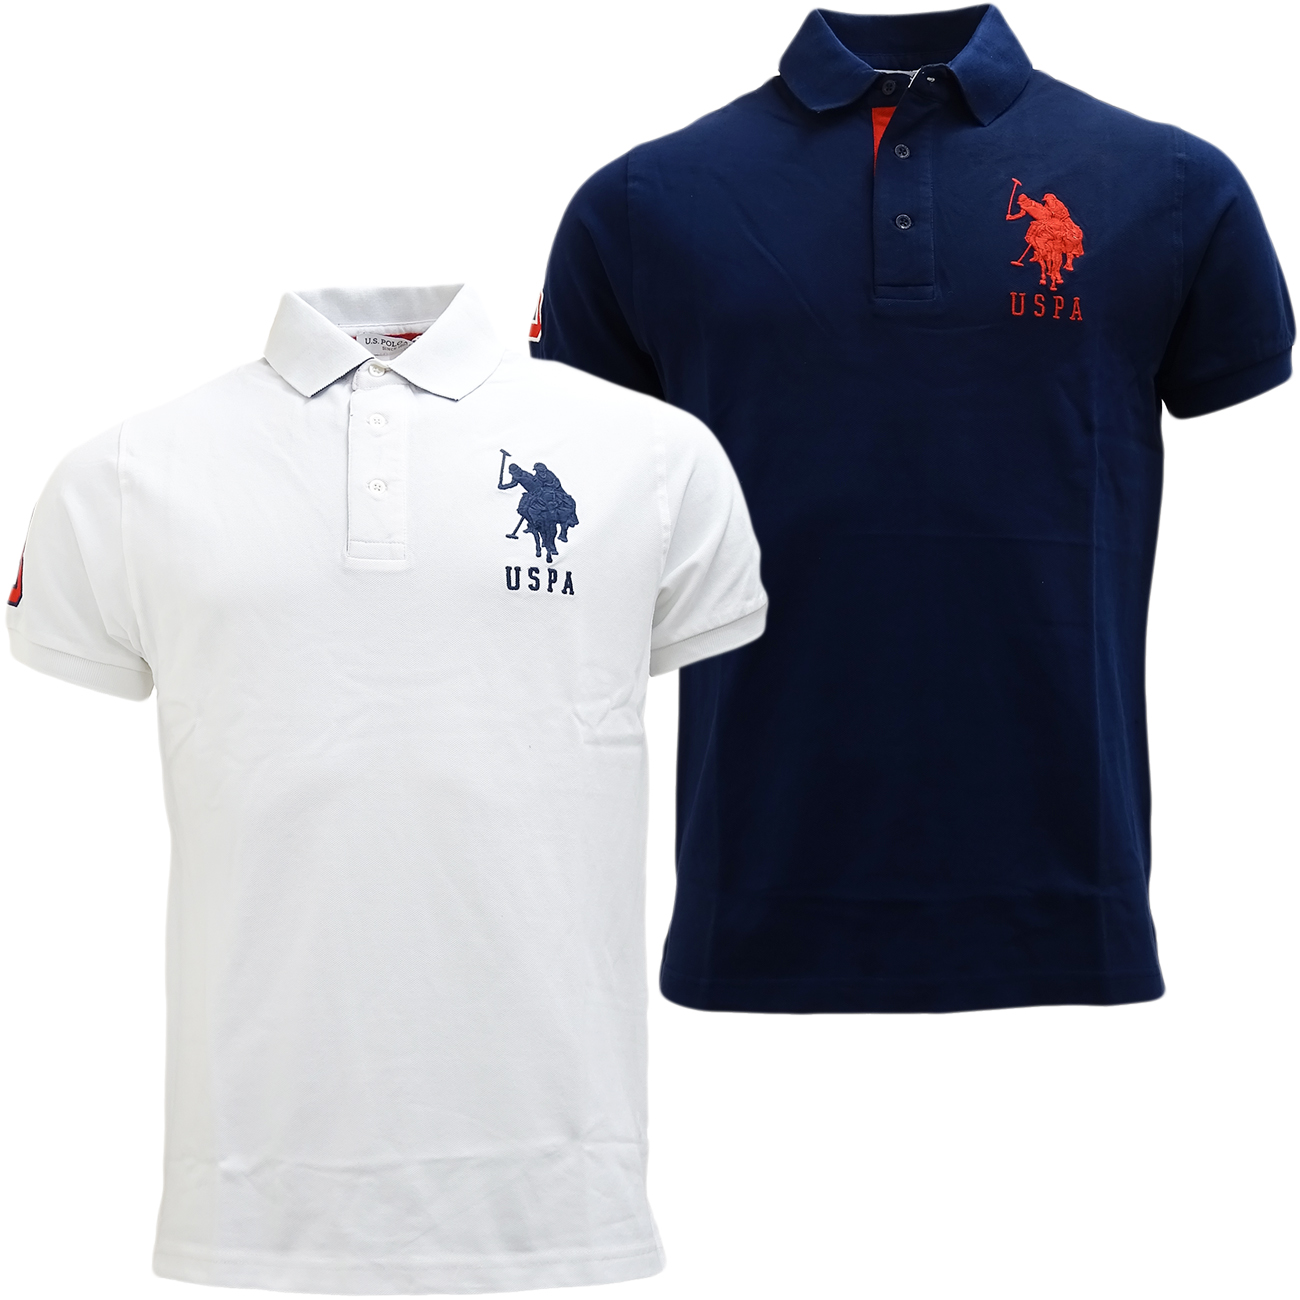 mens polo shirt u s polo assn plain polos horse logo. Black Bedroom Furniture Sets. Home Design Ideas